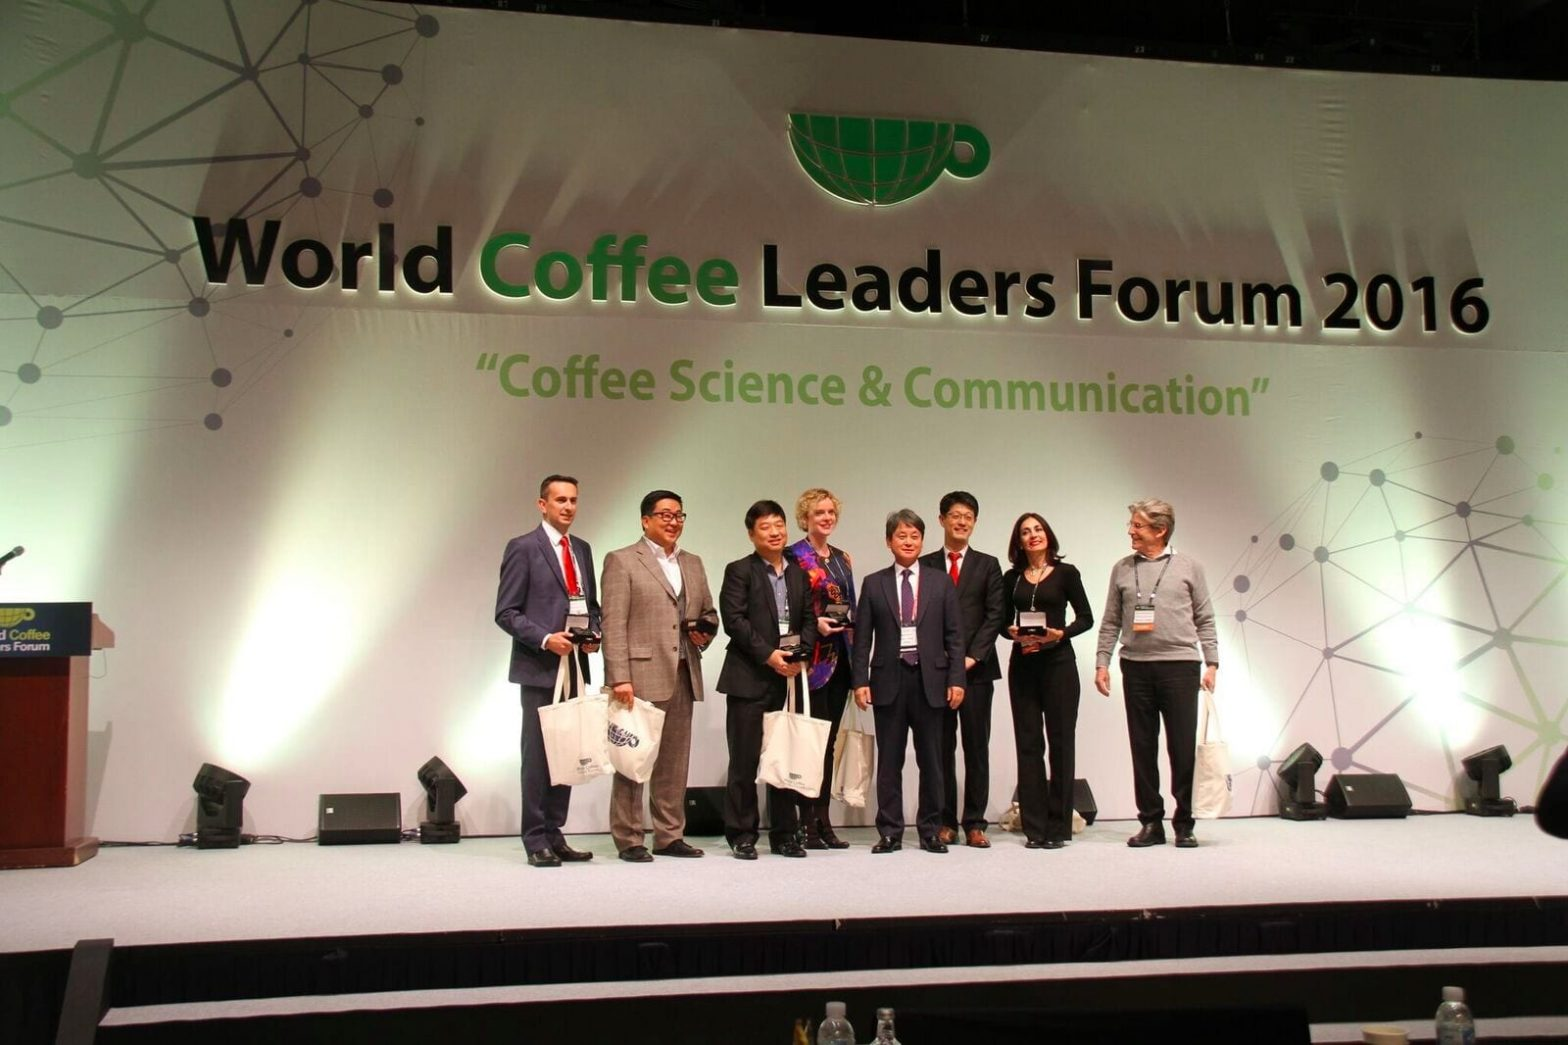 World Coffee Leaders Forum 2016 plenary discussion speakers on stage